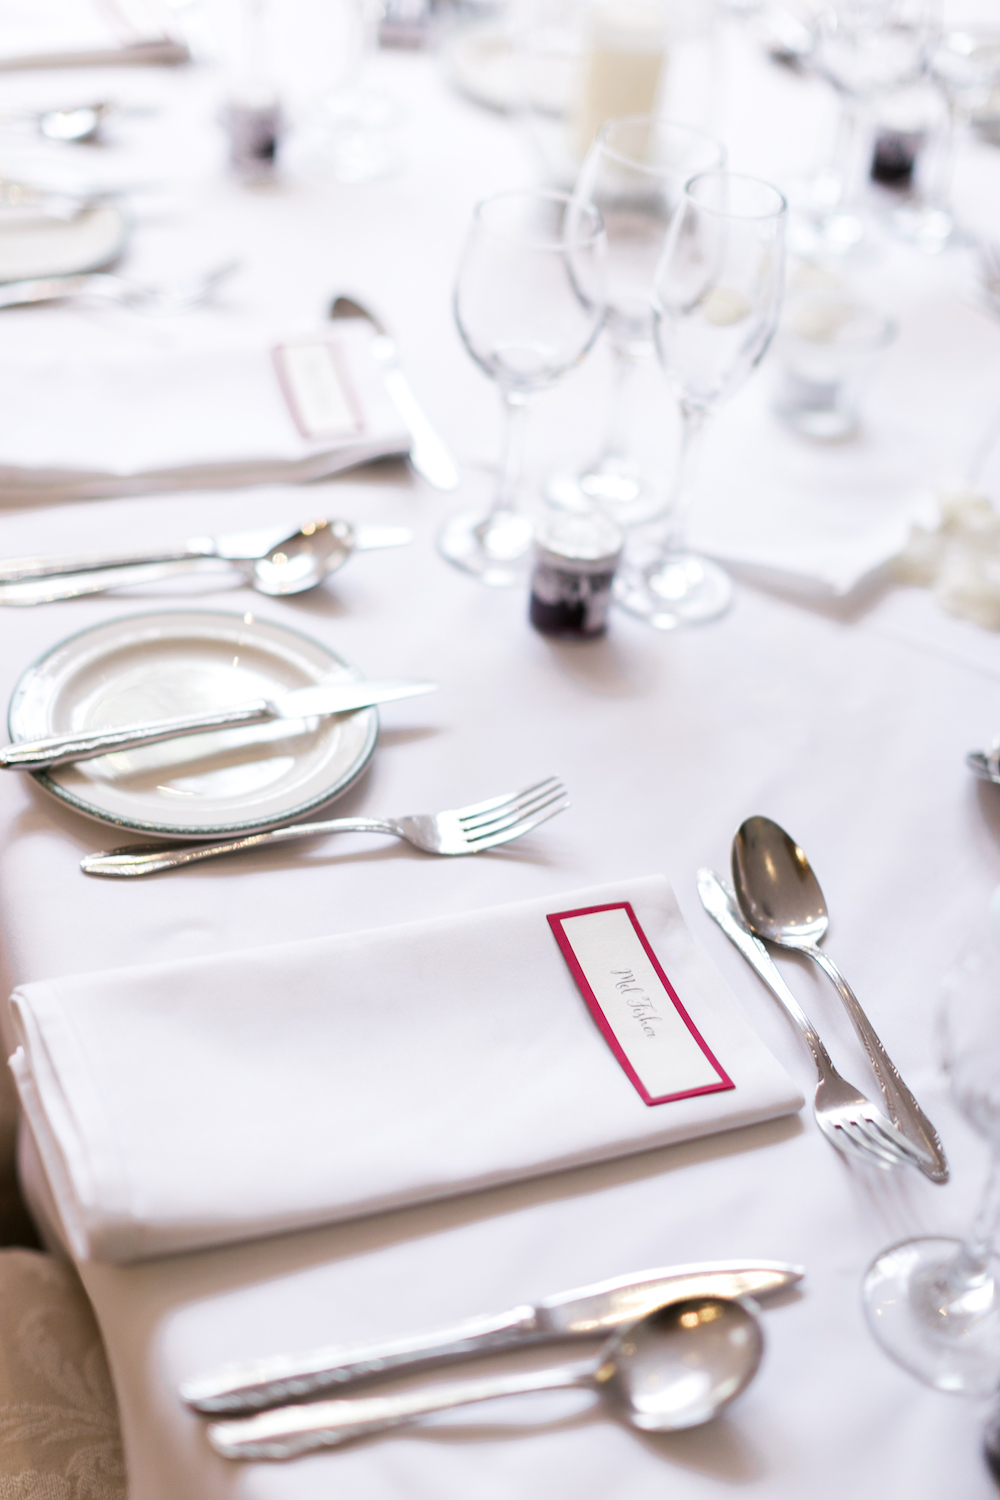 red-and-white-wedding-lancashire-wedding-gibbon-bridge-hotel-in-preston-winter-wedding-jam-table-names-hannah-k-photography-40